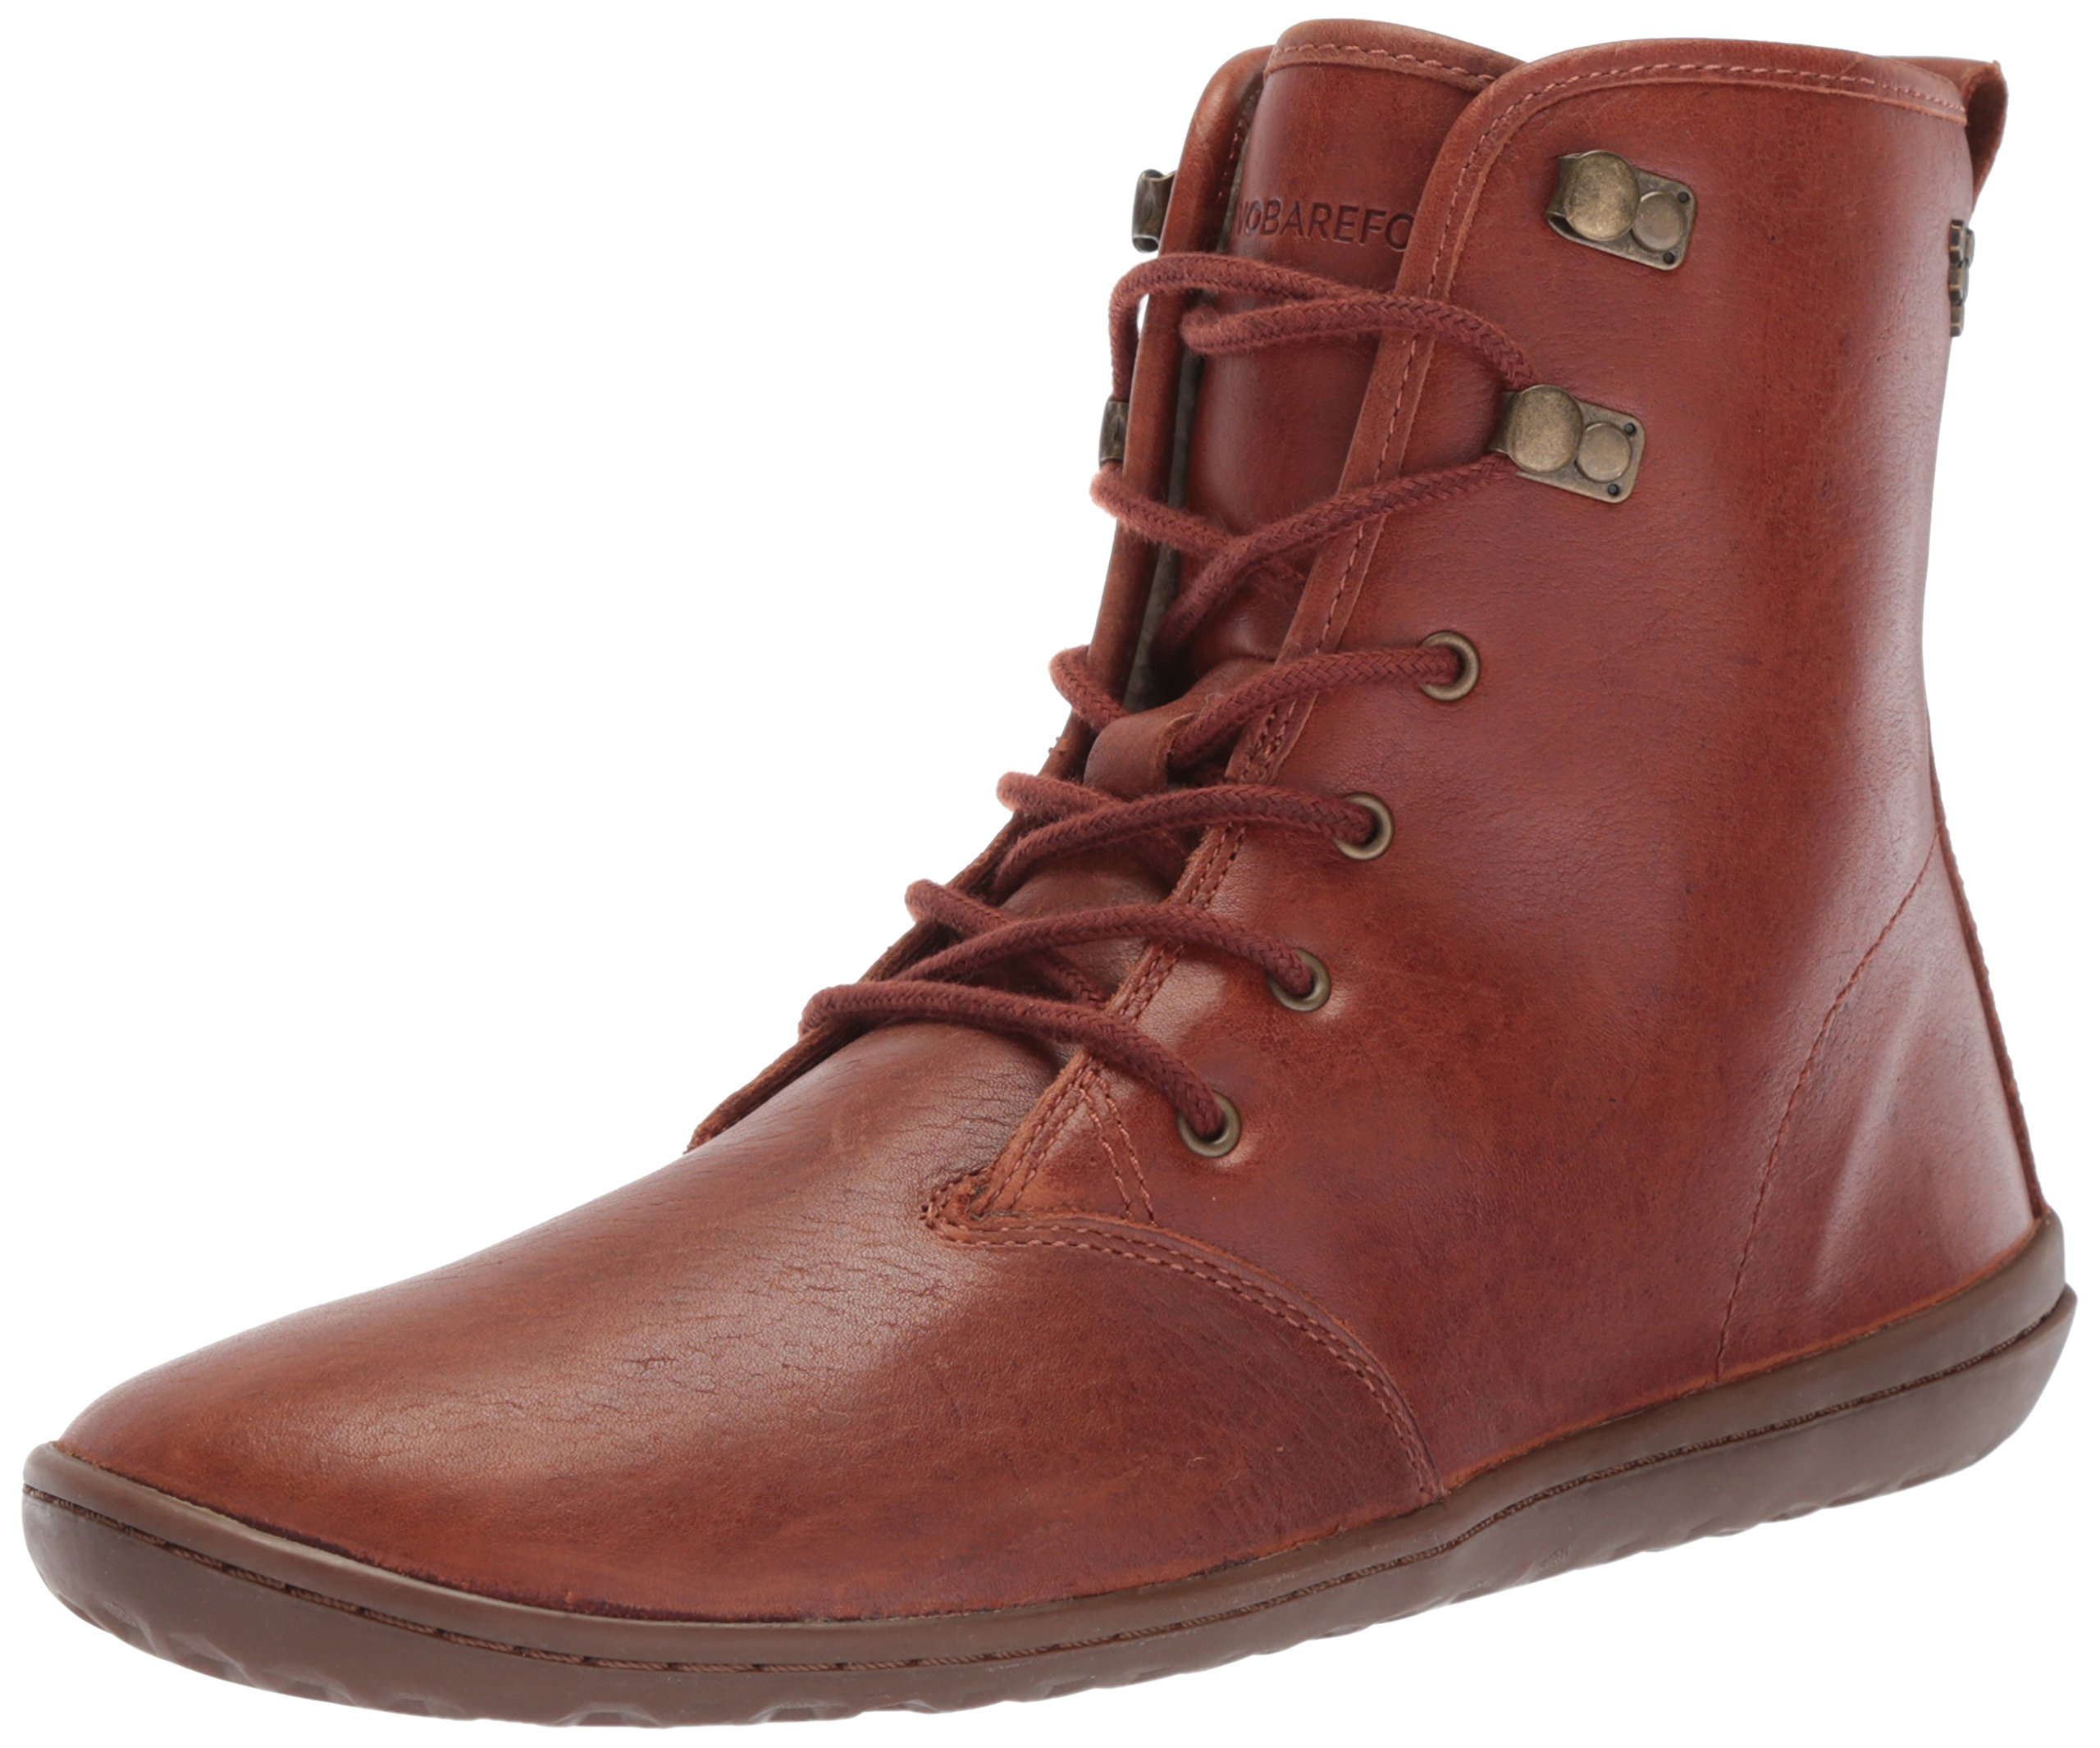 Vivobarefoot Women's Gobi Hi Top Classic Lace up Winter Boot, Tobacco, 40 D EU (9 US) by Vivobarefoot